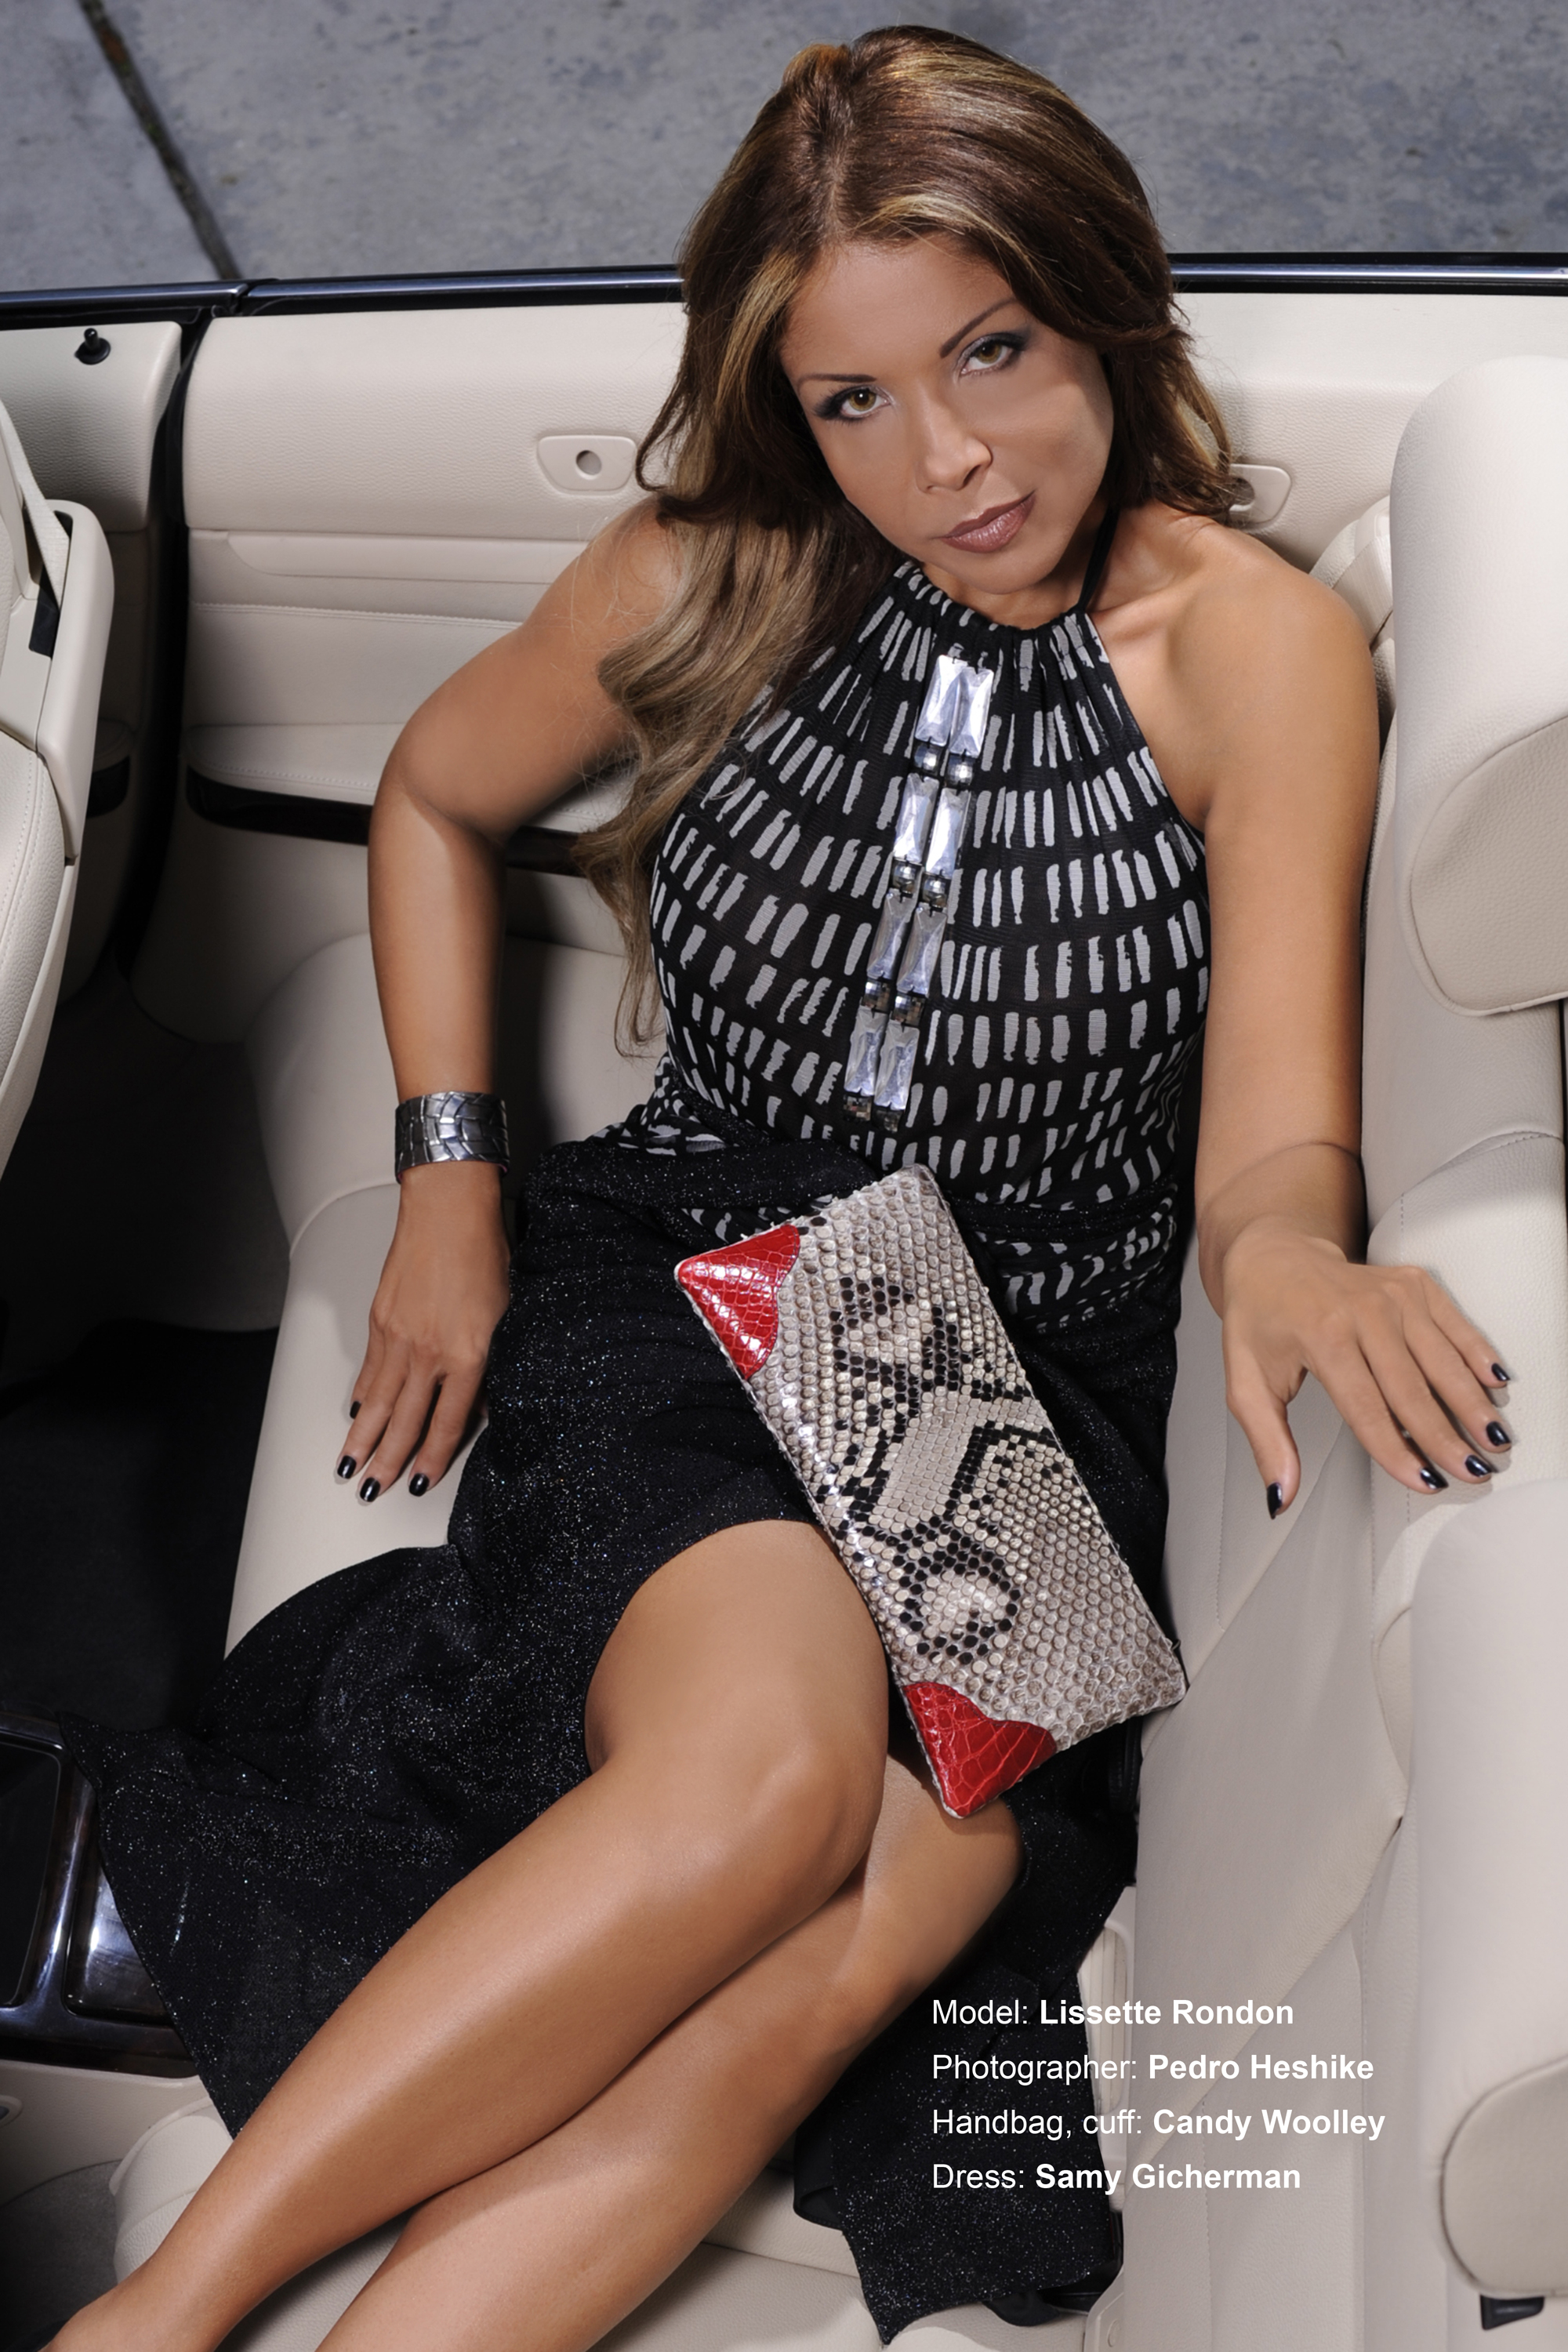 Lissette Rondon with a Candy Woolley two toned python & alligator clutch